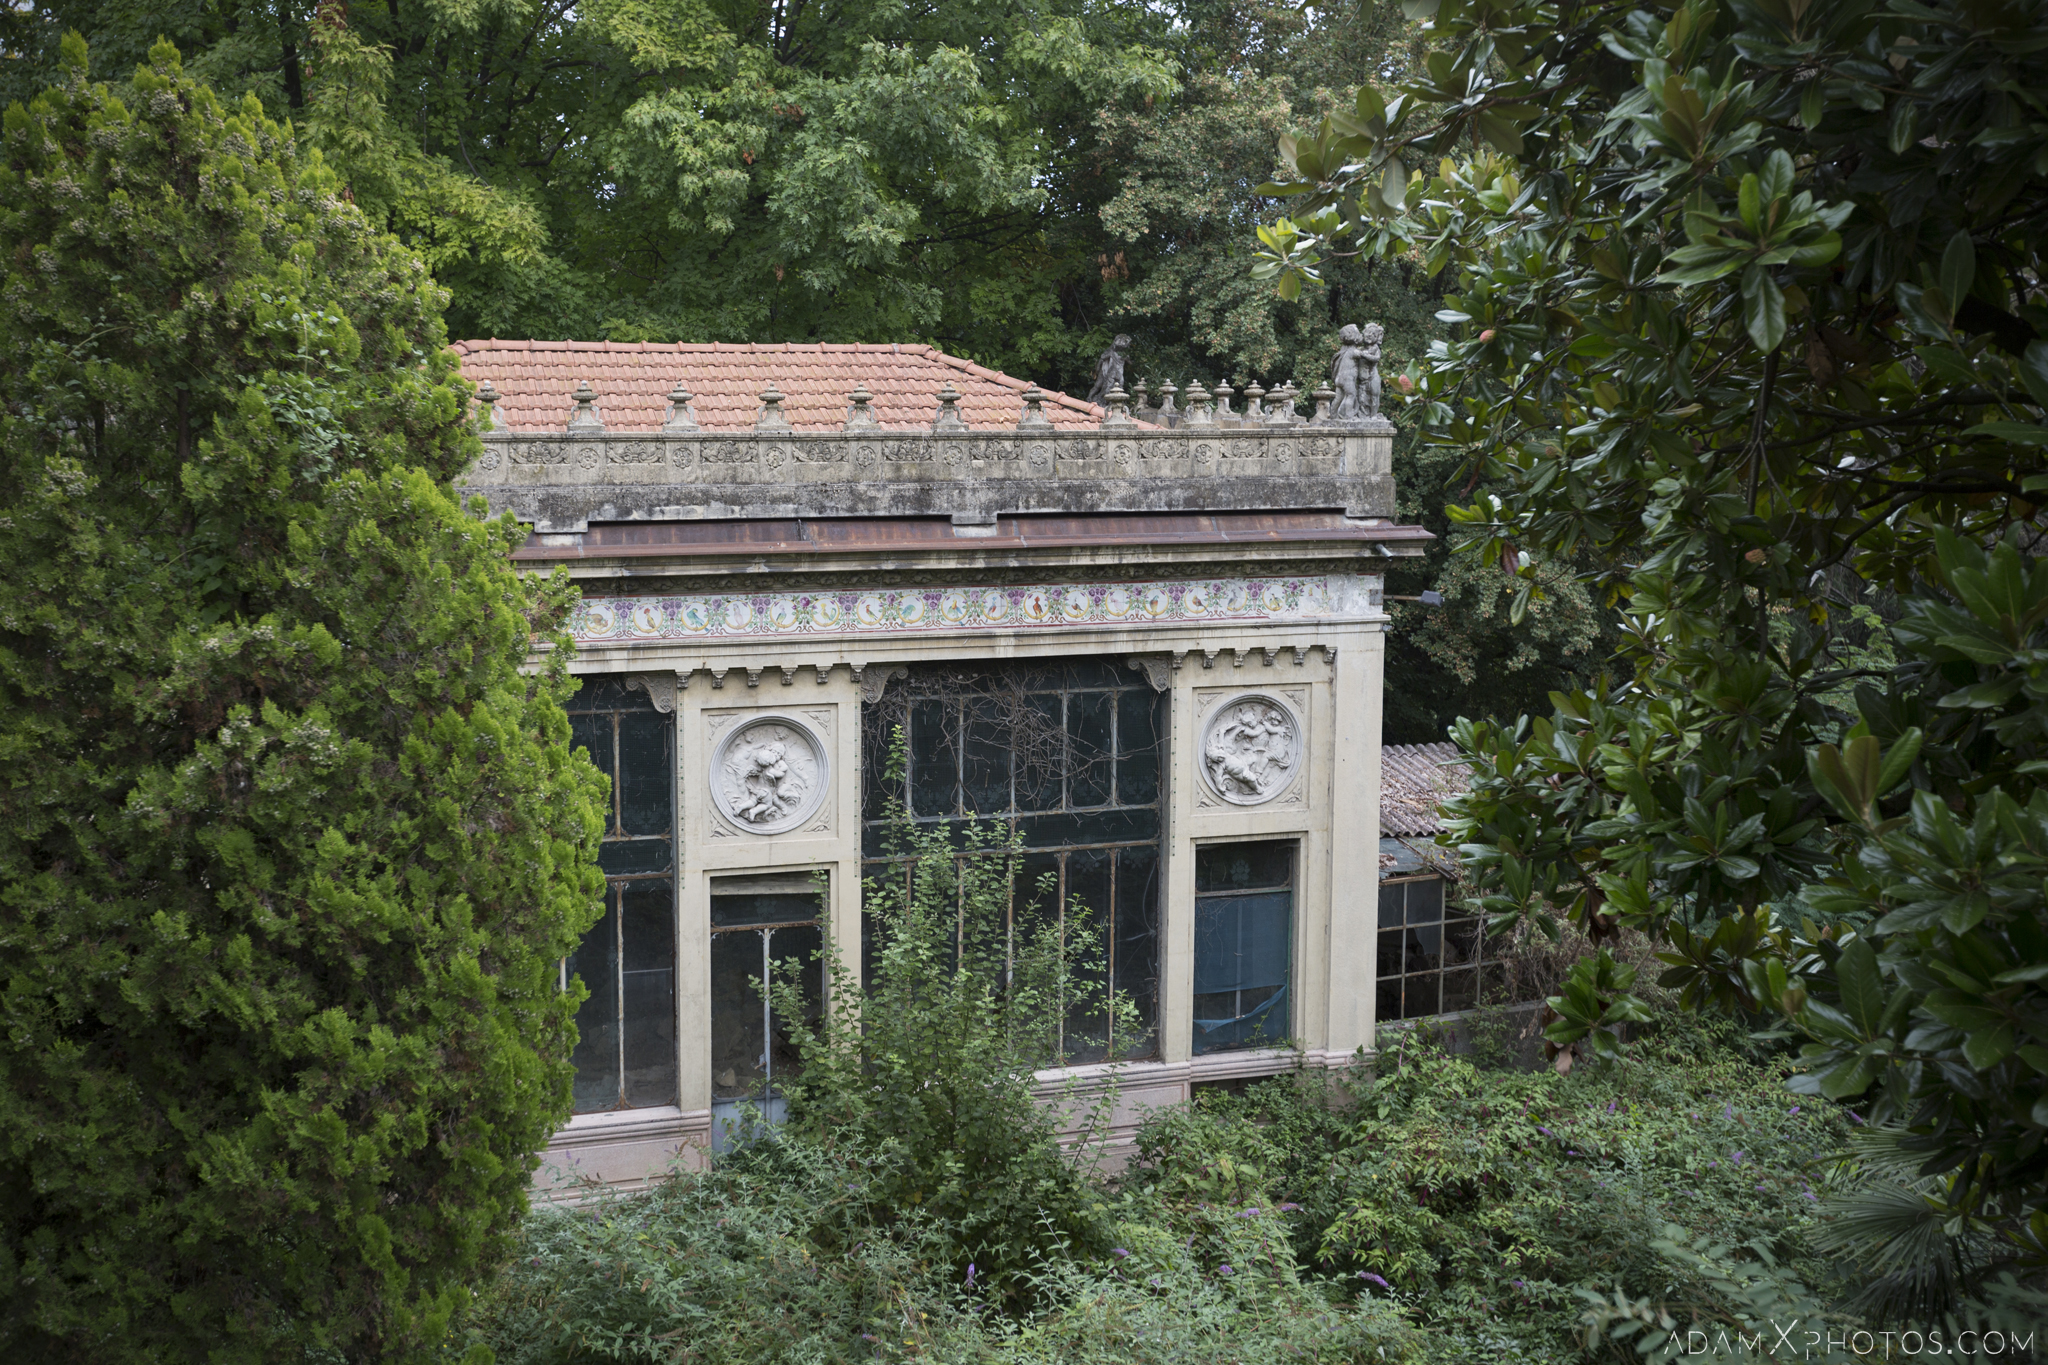 Greenhouse Orangery Outside External Villa Pesenti P Urbex Adam X Urban Exploration Italy Italia Access 2016 Abandoned decay lost forgotten derelict location creepy haunting eerie